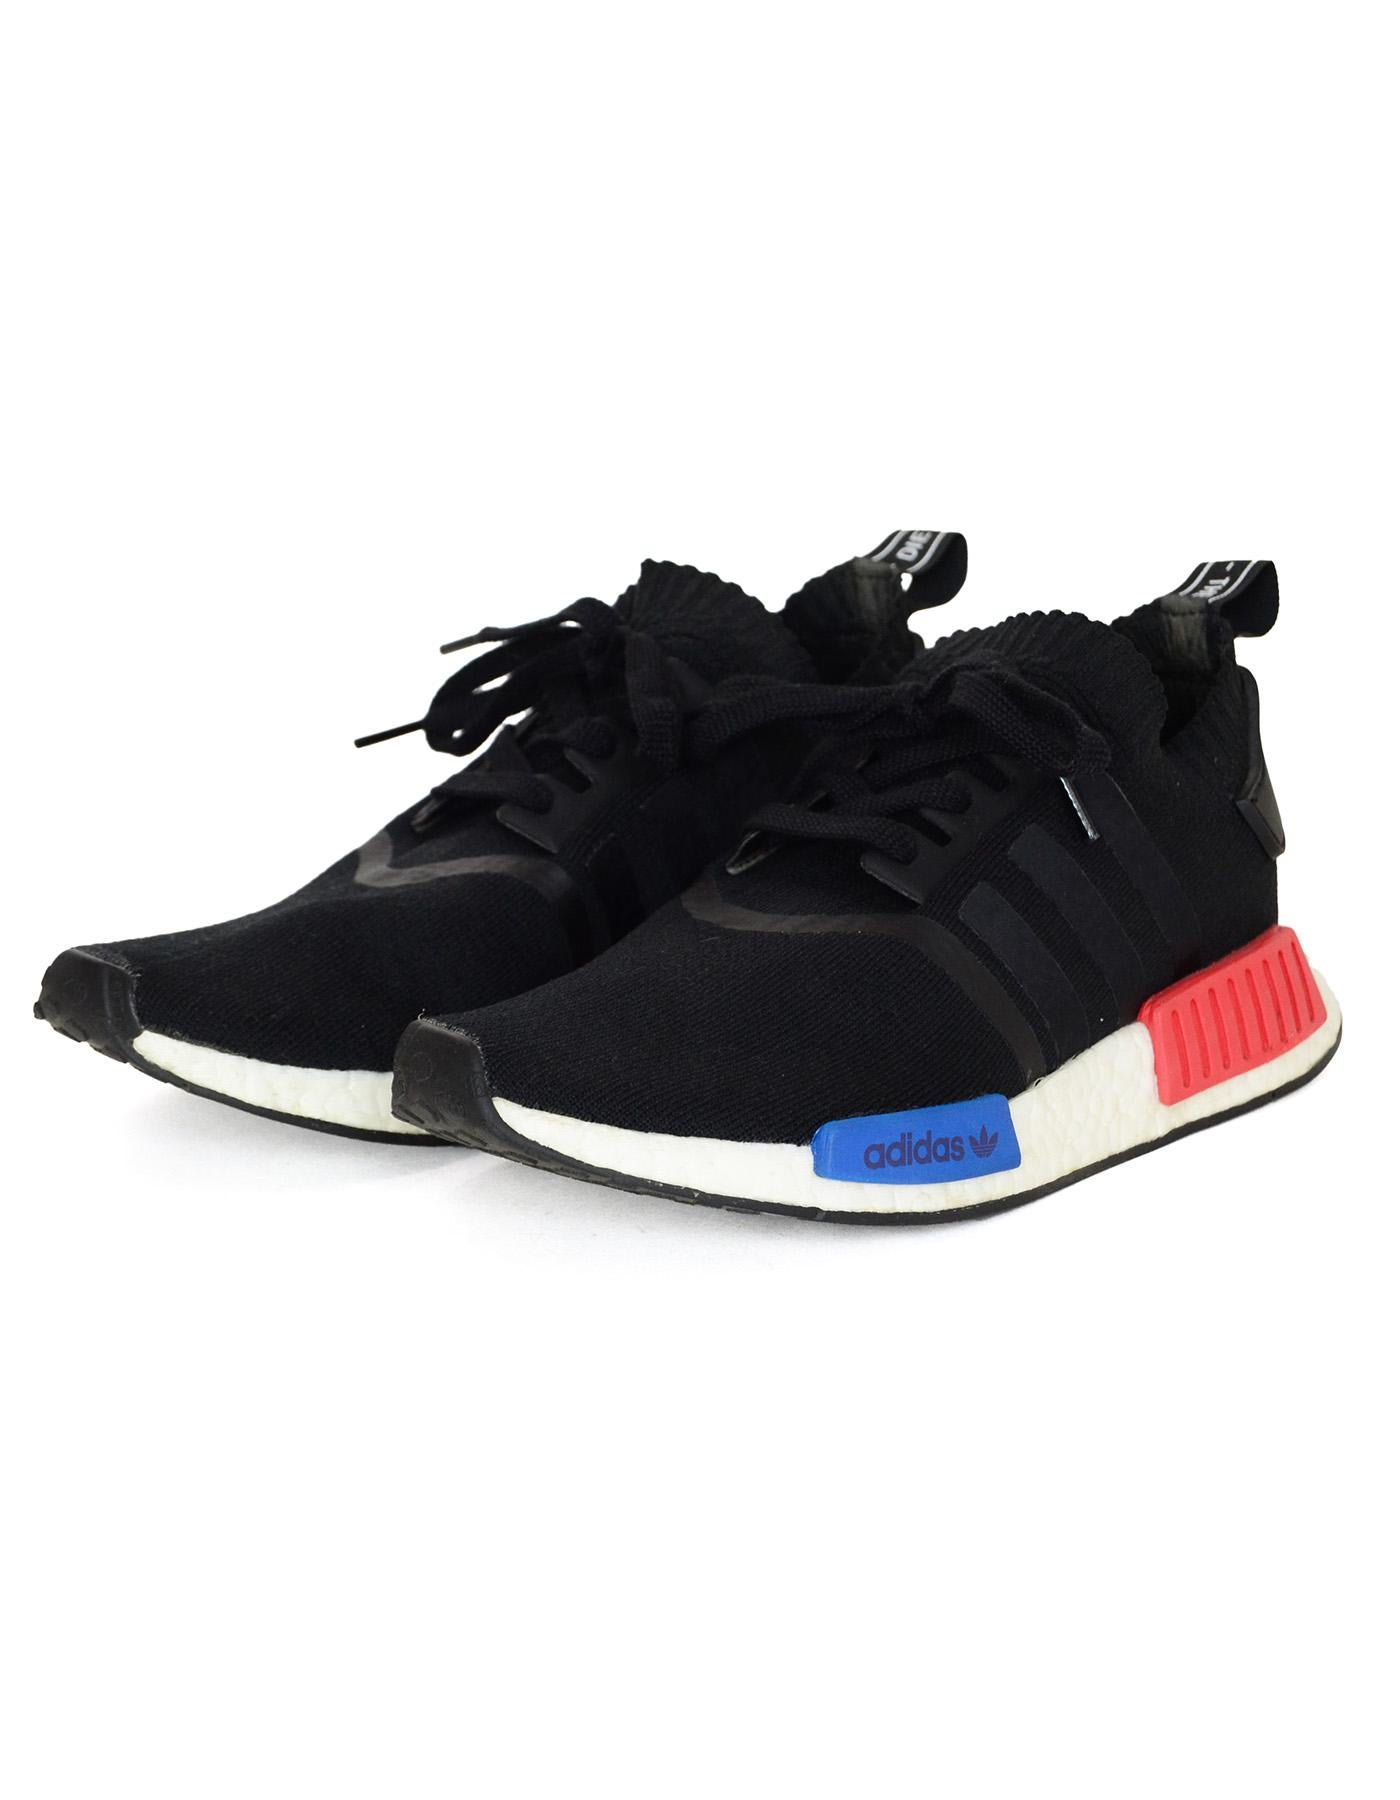 c489a0afe adidas nmd limited edition